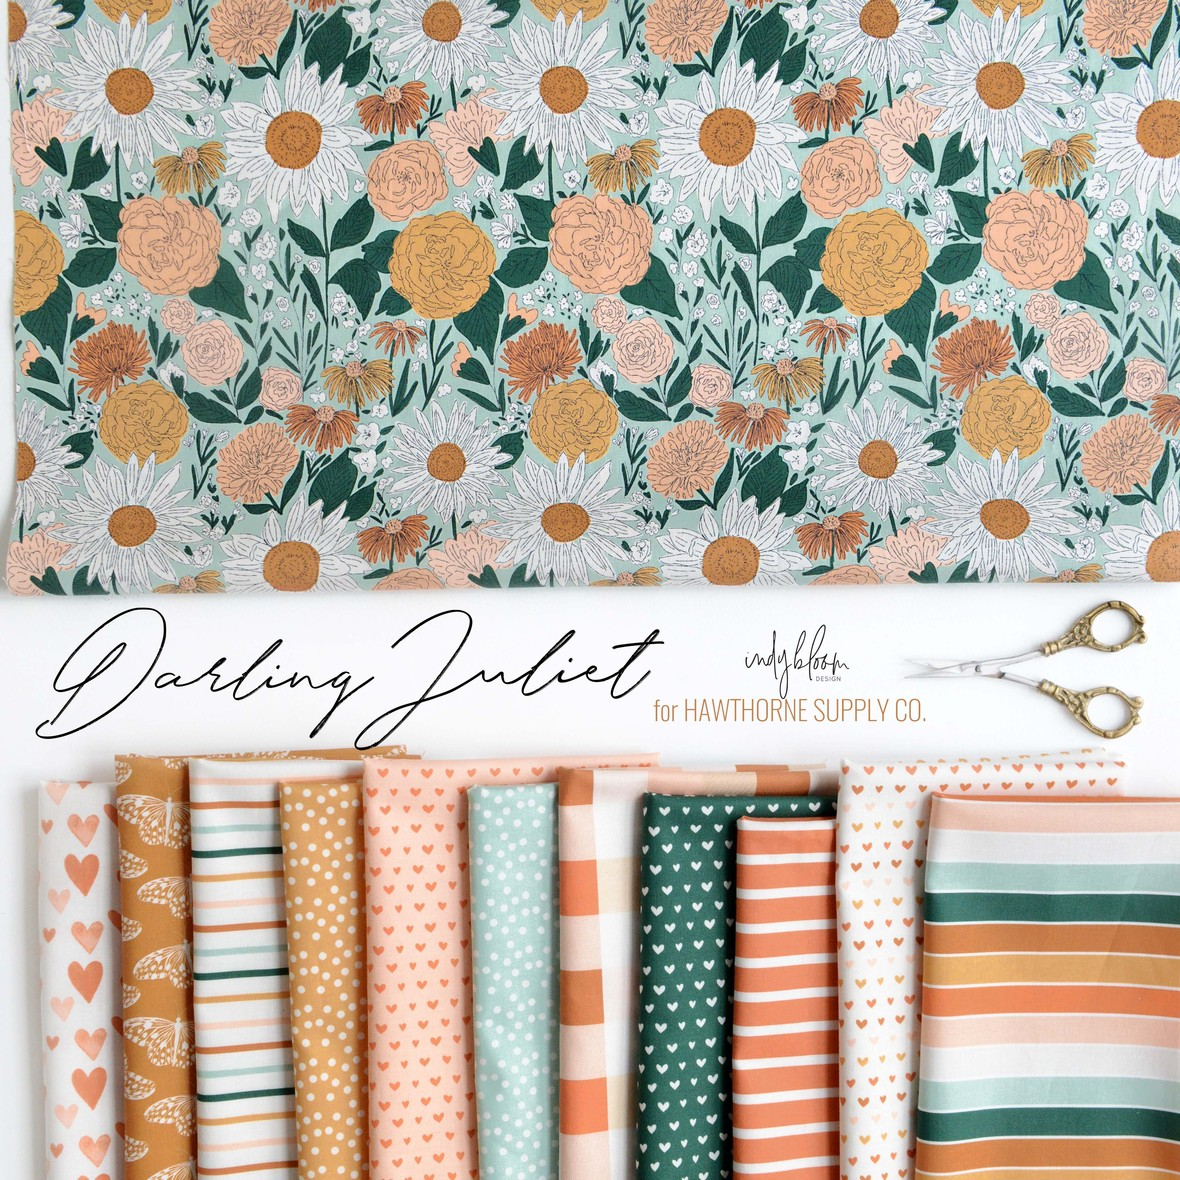 Darling Juliet Indy Bloom for Hawthorne Supply Co. Fabric